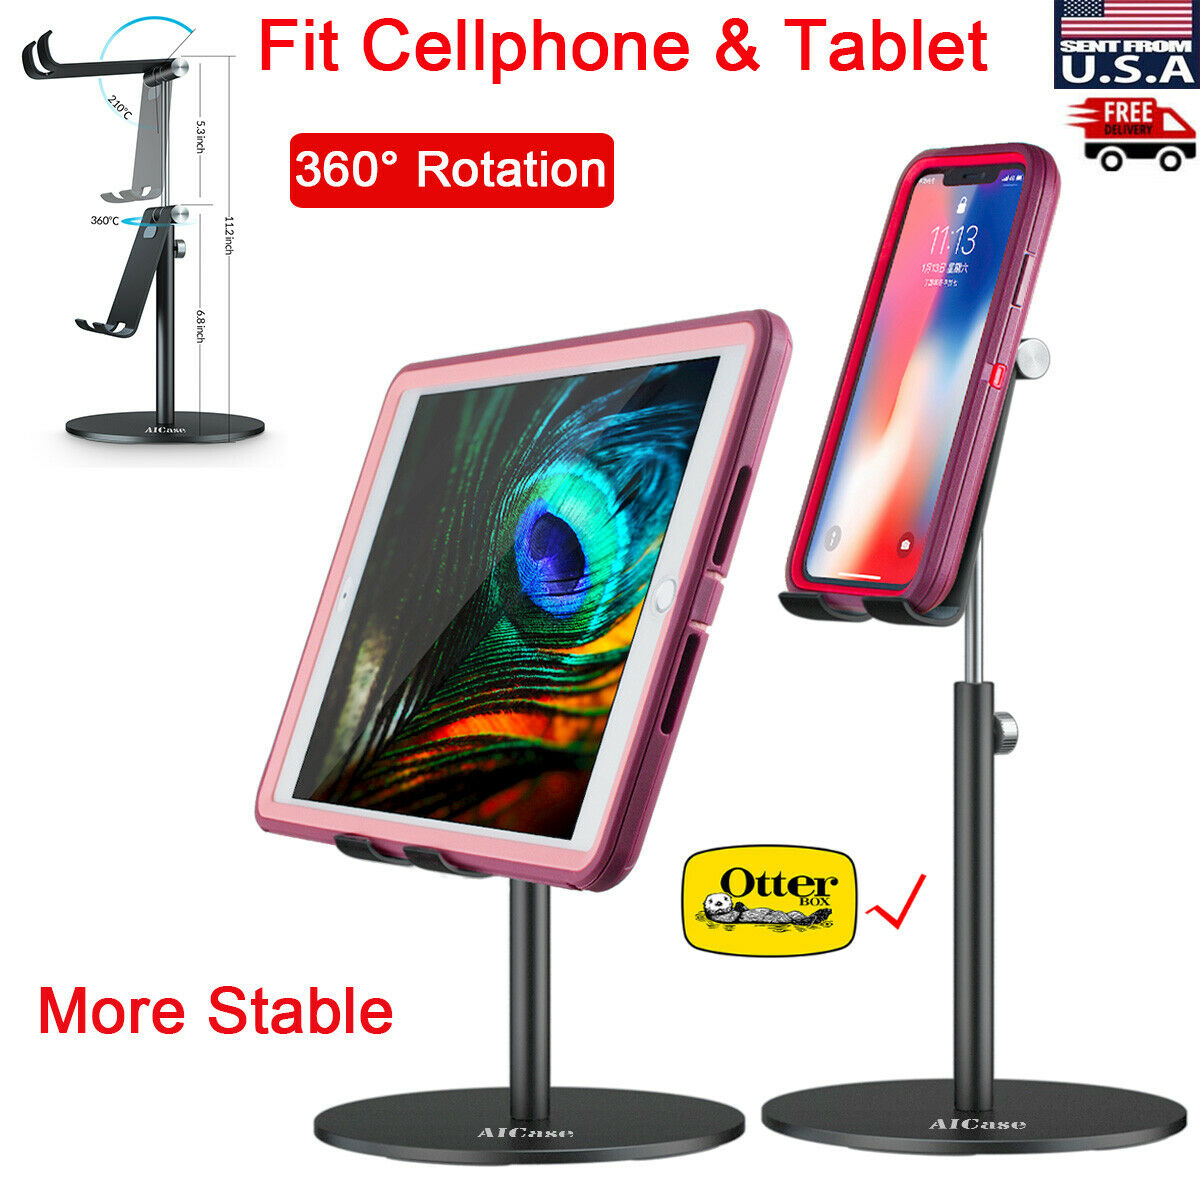 Tall Adjust Tablet Cell Phone Desktop Desk Stand iPad iPhone Mount Holder